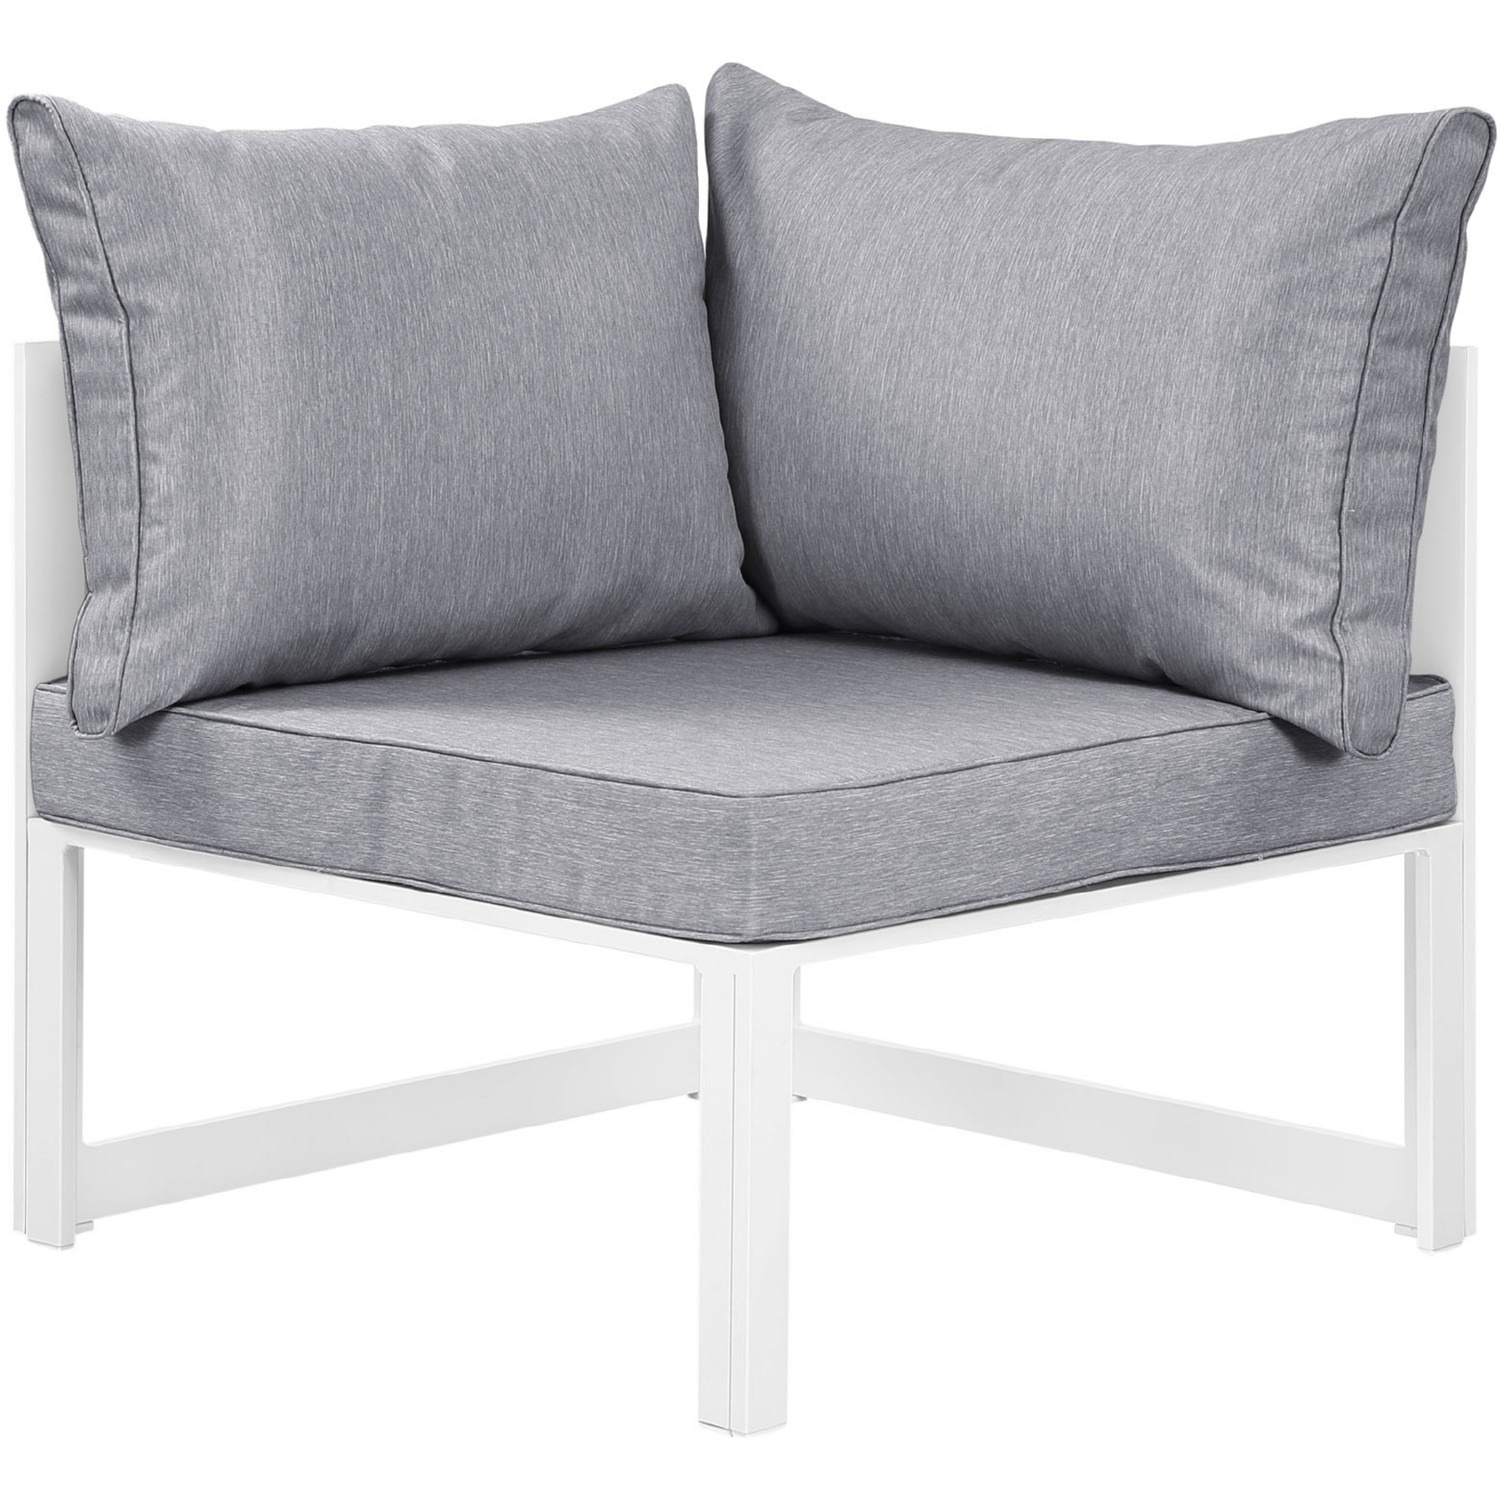 8-Piece Outdoor Sectional In Gray Fabric Finish - image-3